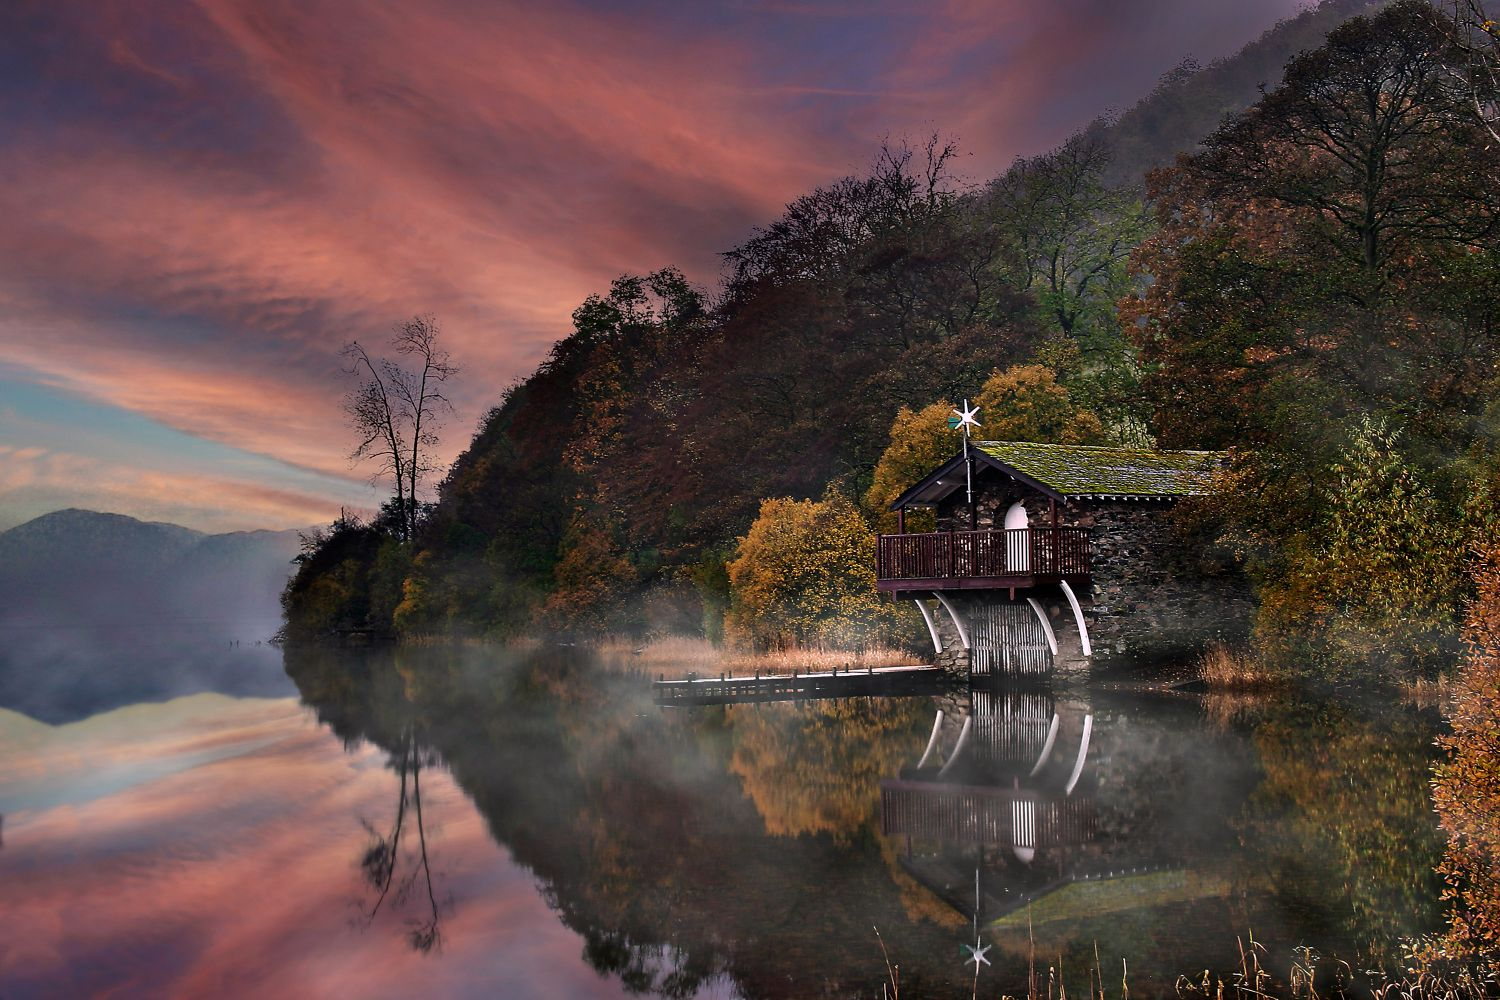 Misty sunset at The Duke of Portland Boathouse on Ullswater by Martin Lawrence